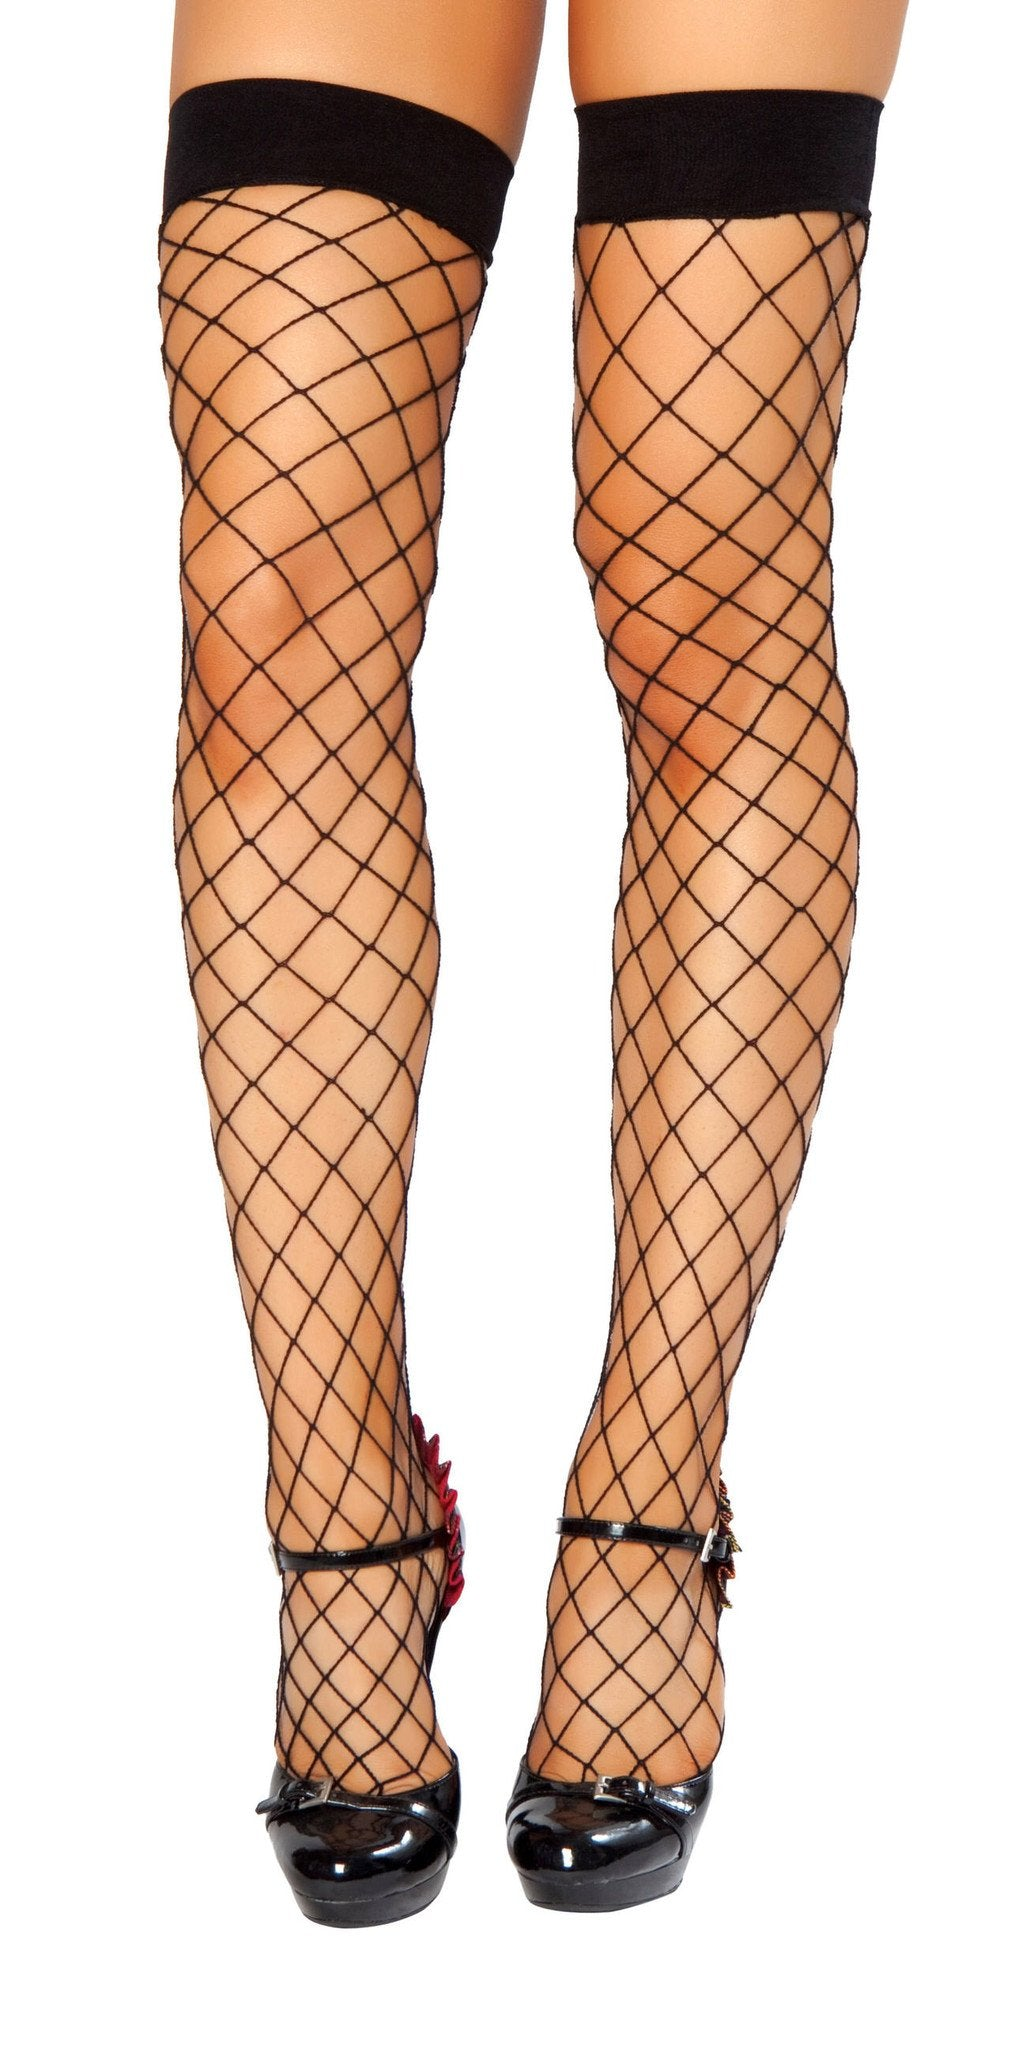 Thigh High Open Fish Net Stocking